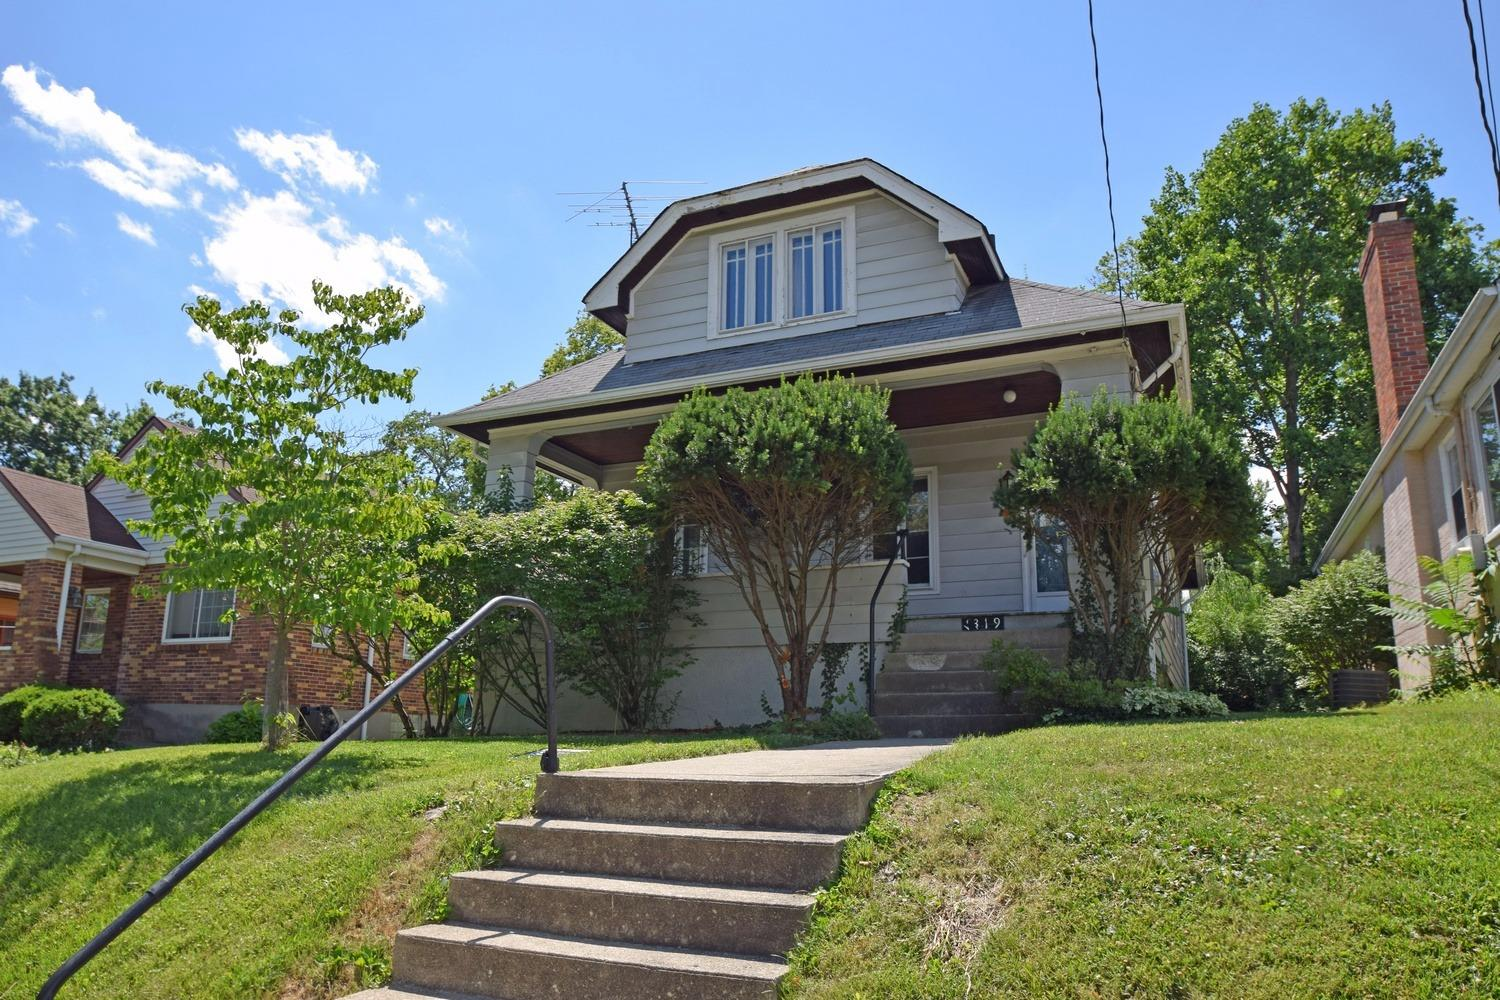 1319 Ault View Avenue, Cincinnati, OH 45208